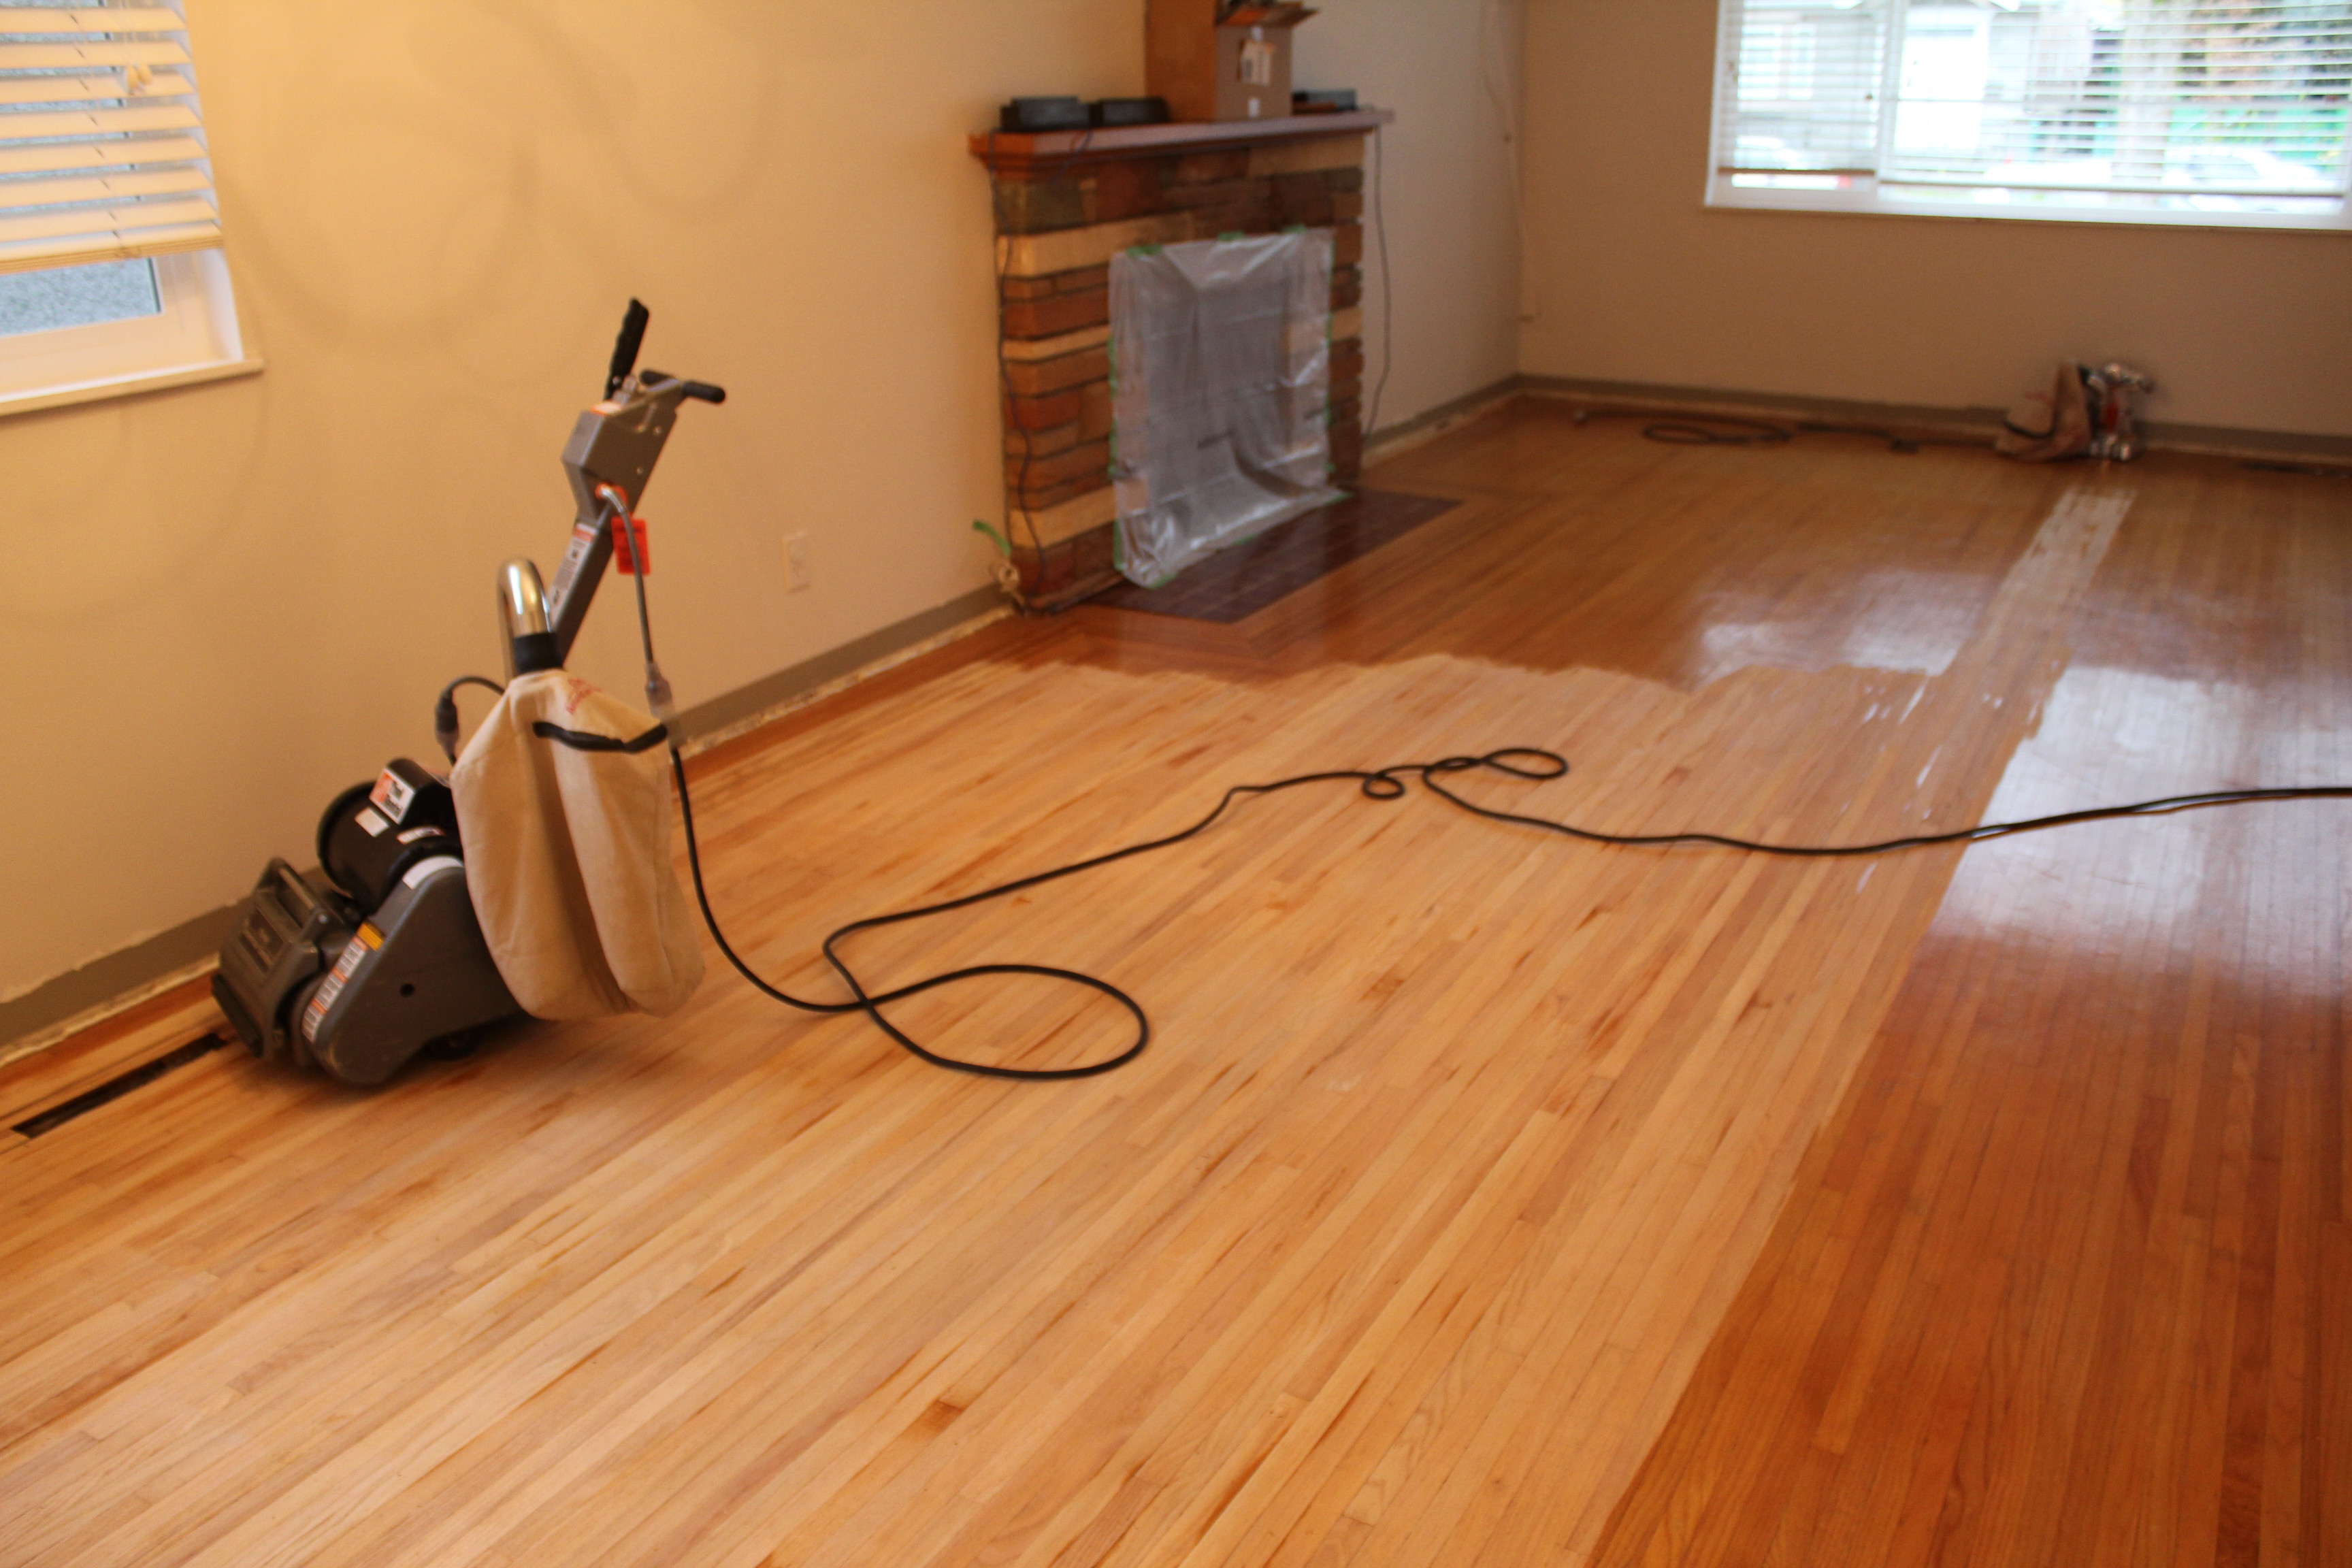 sanding hardwood floors with a hand sander of winsome wood floor cleaning machinesu002breview for wood floor regarding wood floor for incredible best wood floor cleaning machine and hardwood floor cleaning machine best